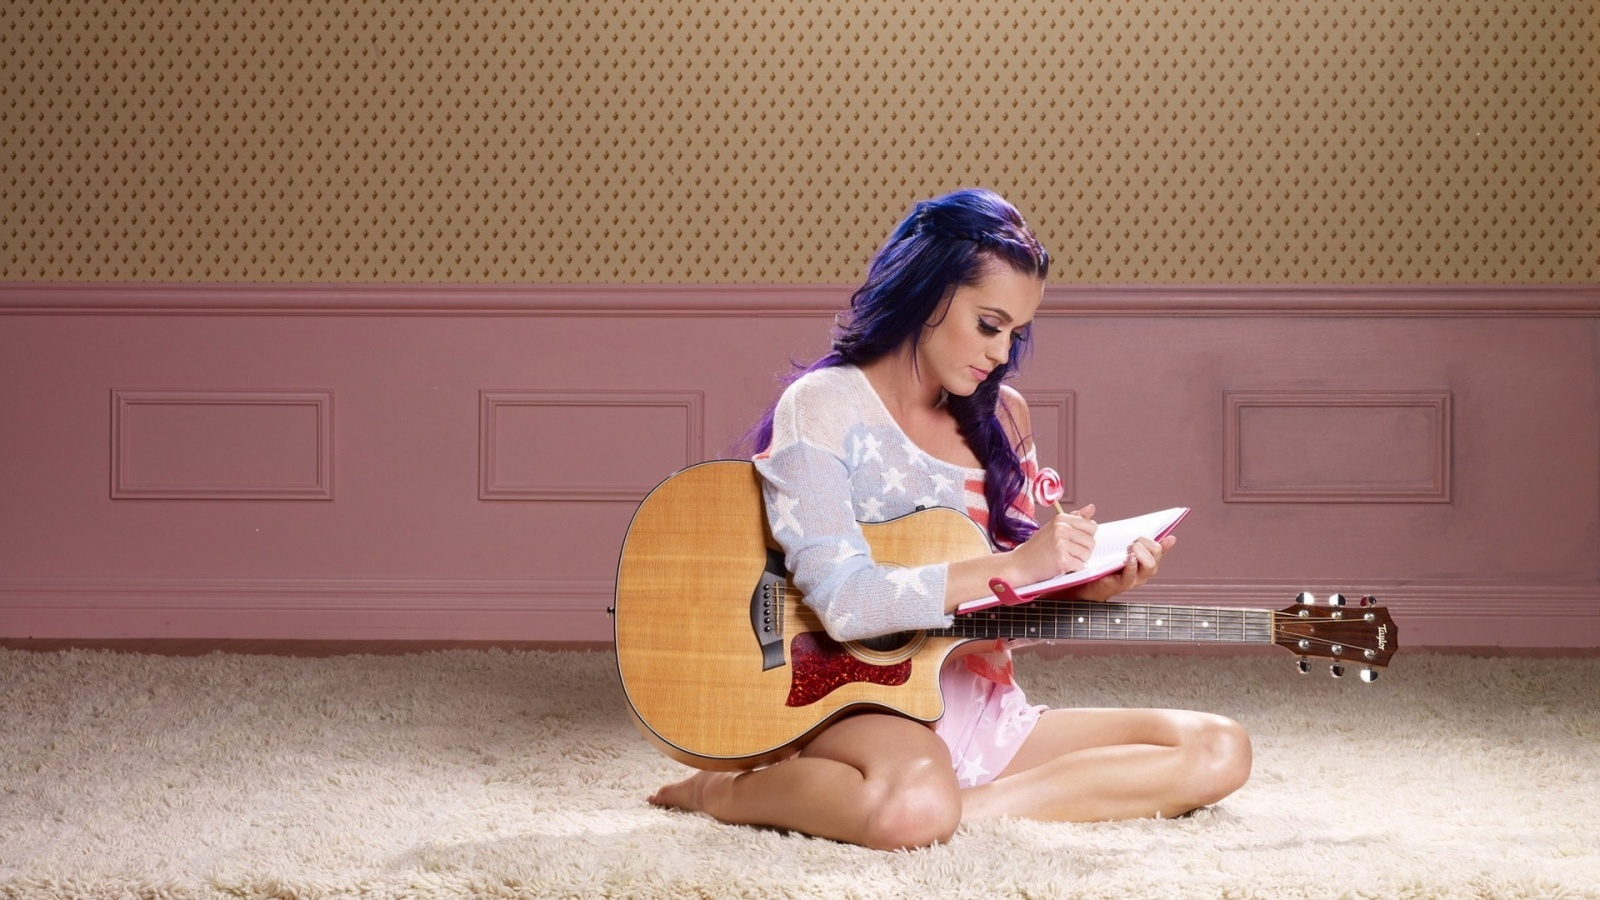 Katy perry songwriter